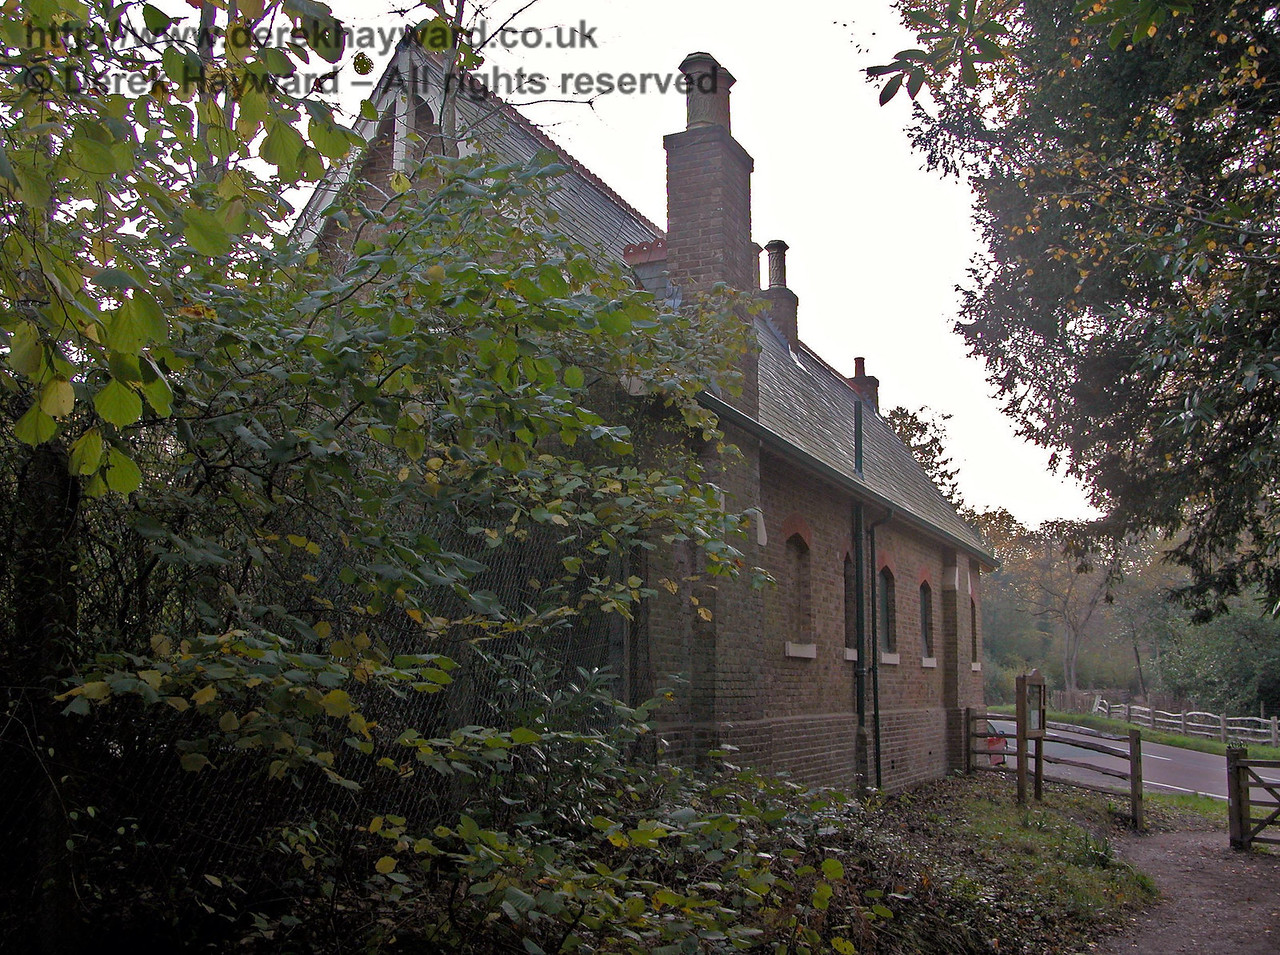 The rear of Rowfant Station building looking west. The footpath in this area is rather drab and dark, with some occasionally unpleasant smells coming from nearby premises. Press on past the site for more pleasant views. 14.11.2005